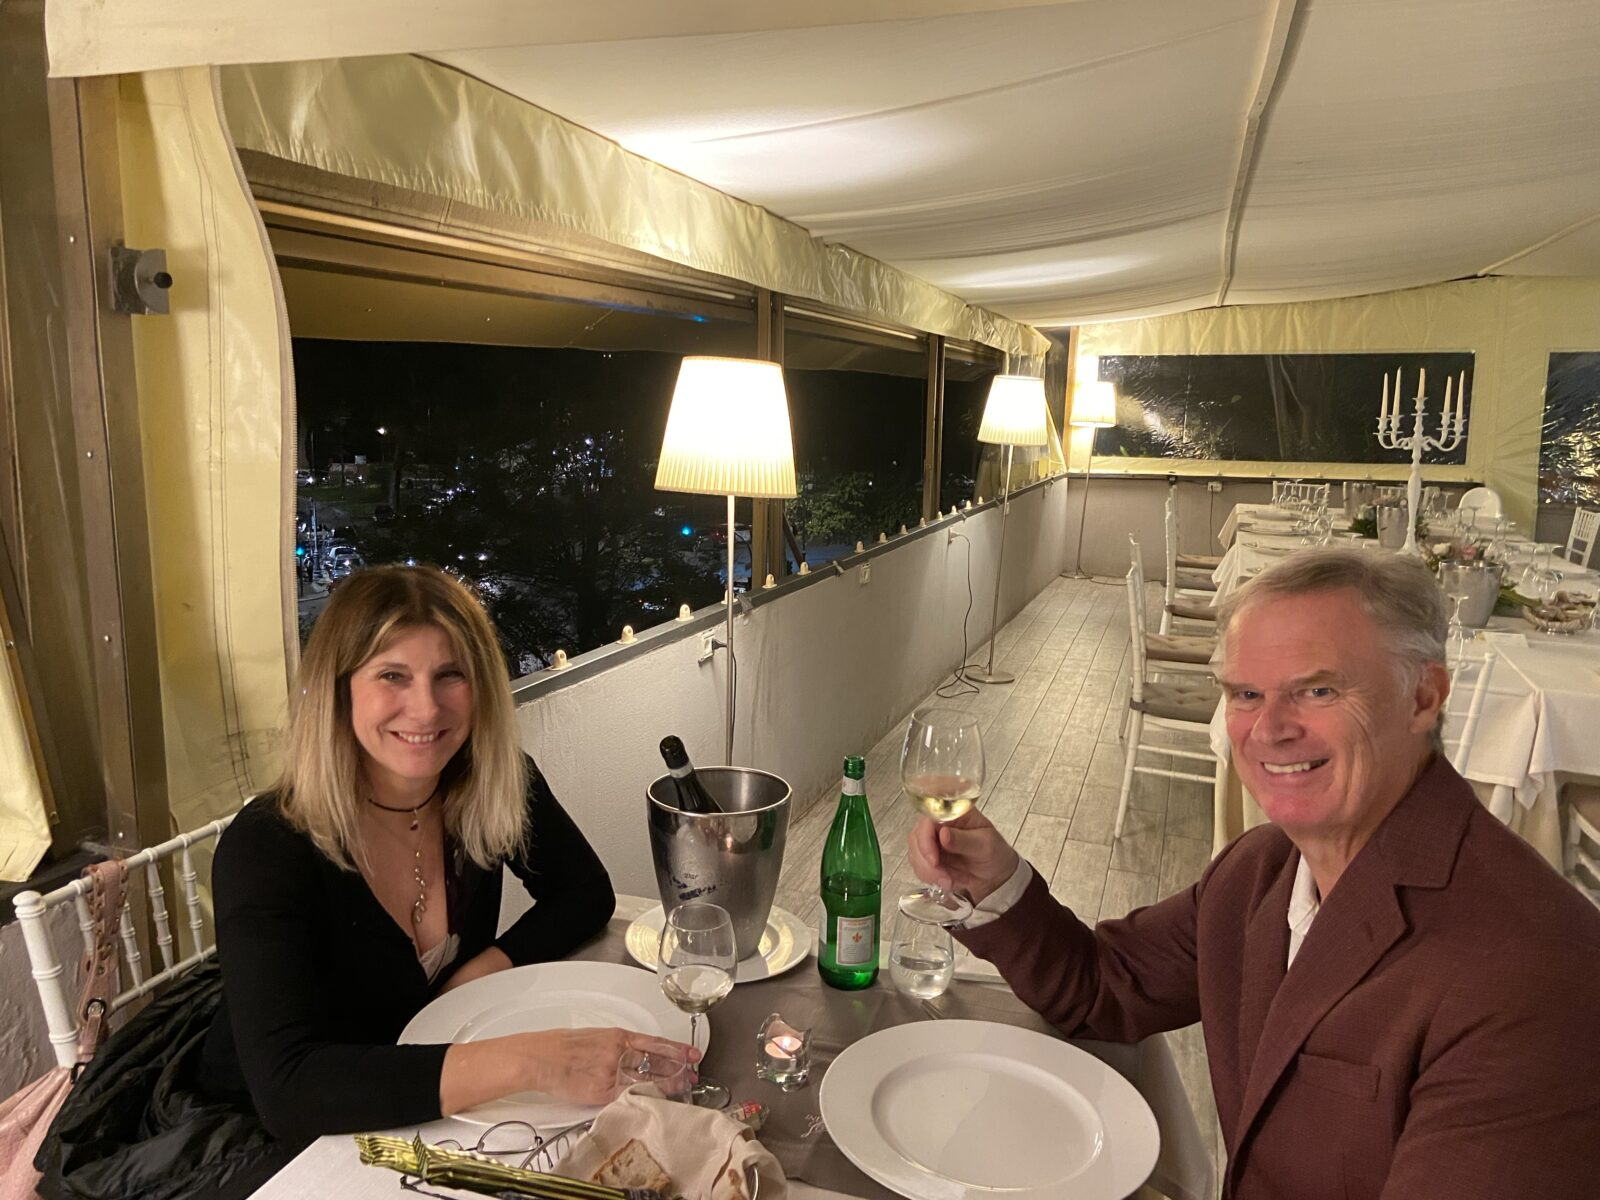 Marina and I dined at Consolini extra early Saturday night to avoid the crowd as Covid numbers climb in Rome.